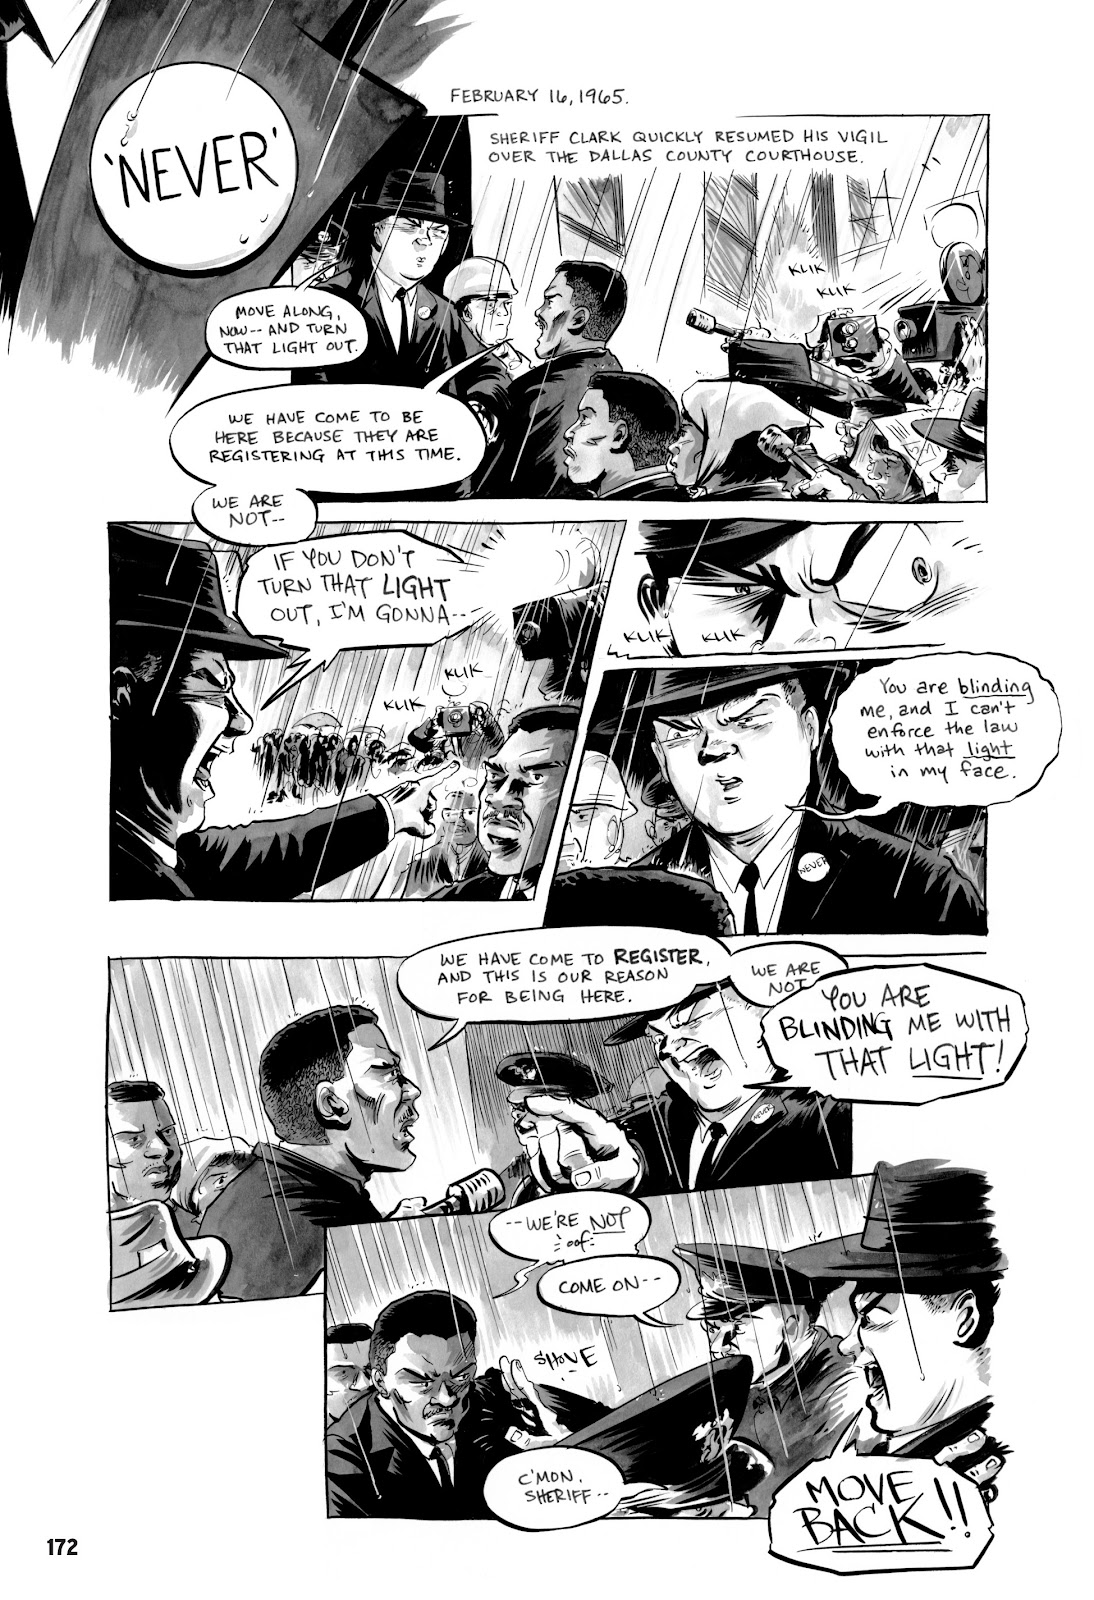 March 3 Page 166